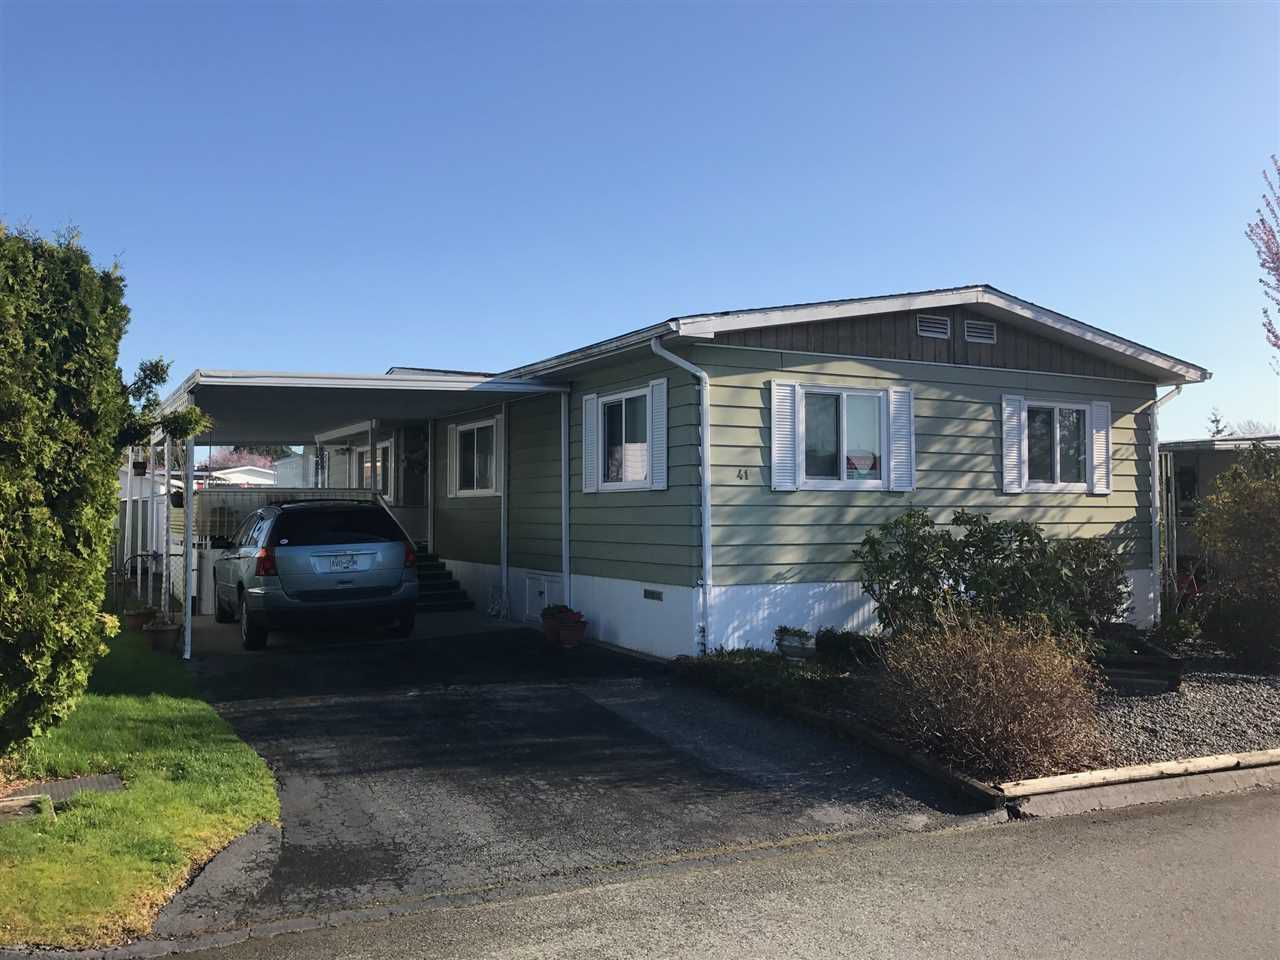 """Main Photo: 41 15875 20 Avenue in Surrey: King George Corridor Manufactured Home for sale in """"Searidge Bays"""" (South Surrey White Rock)  : MLS®# R2154424"""